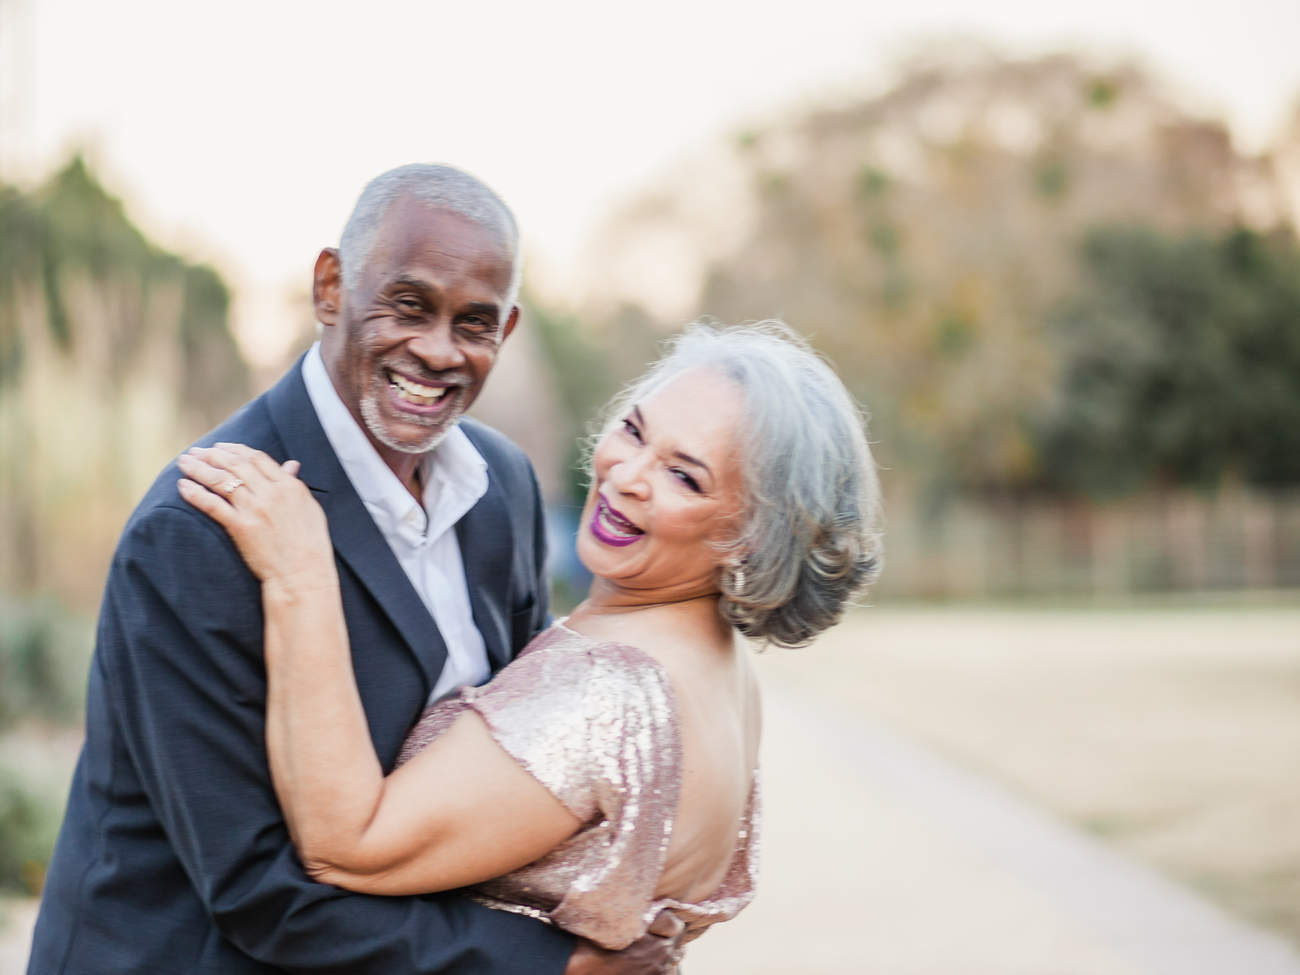 The secret to a lasting marriage is truth, honesty and not letting the small things get you down,  the pair happily admitted.  But most of all never forgetting to laugh and have fun. It is hard work, but it has always been worth the work it takes.